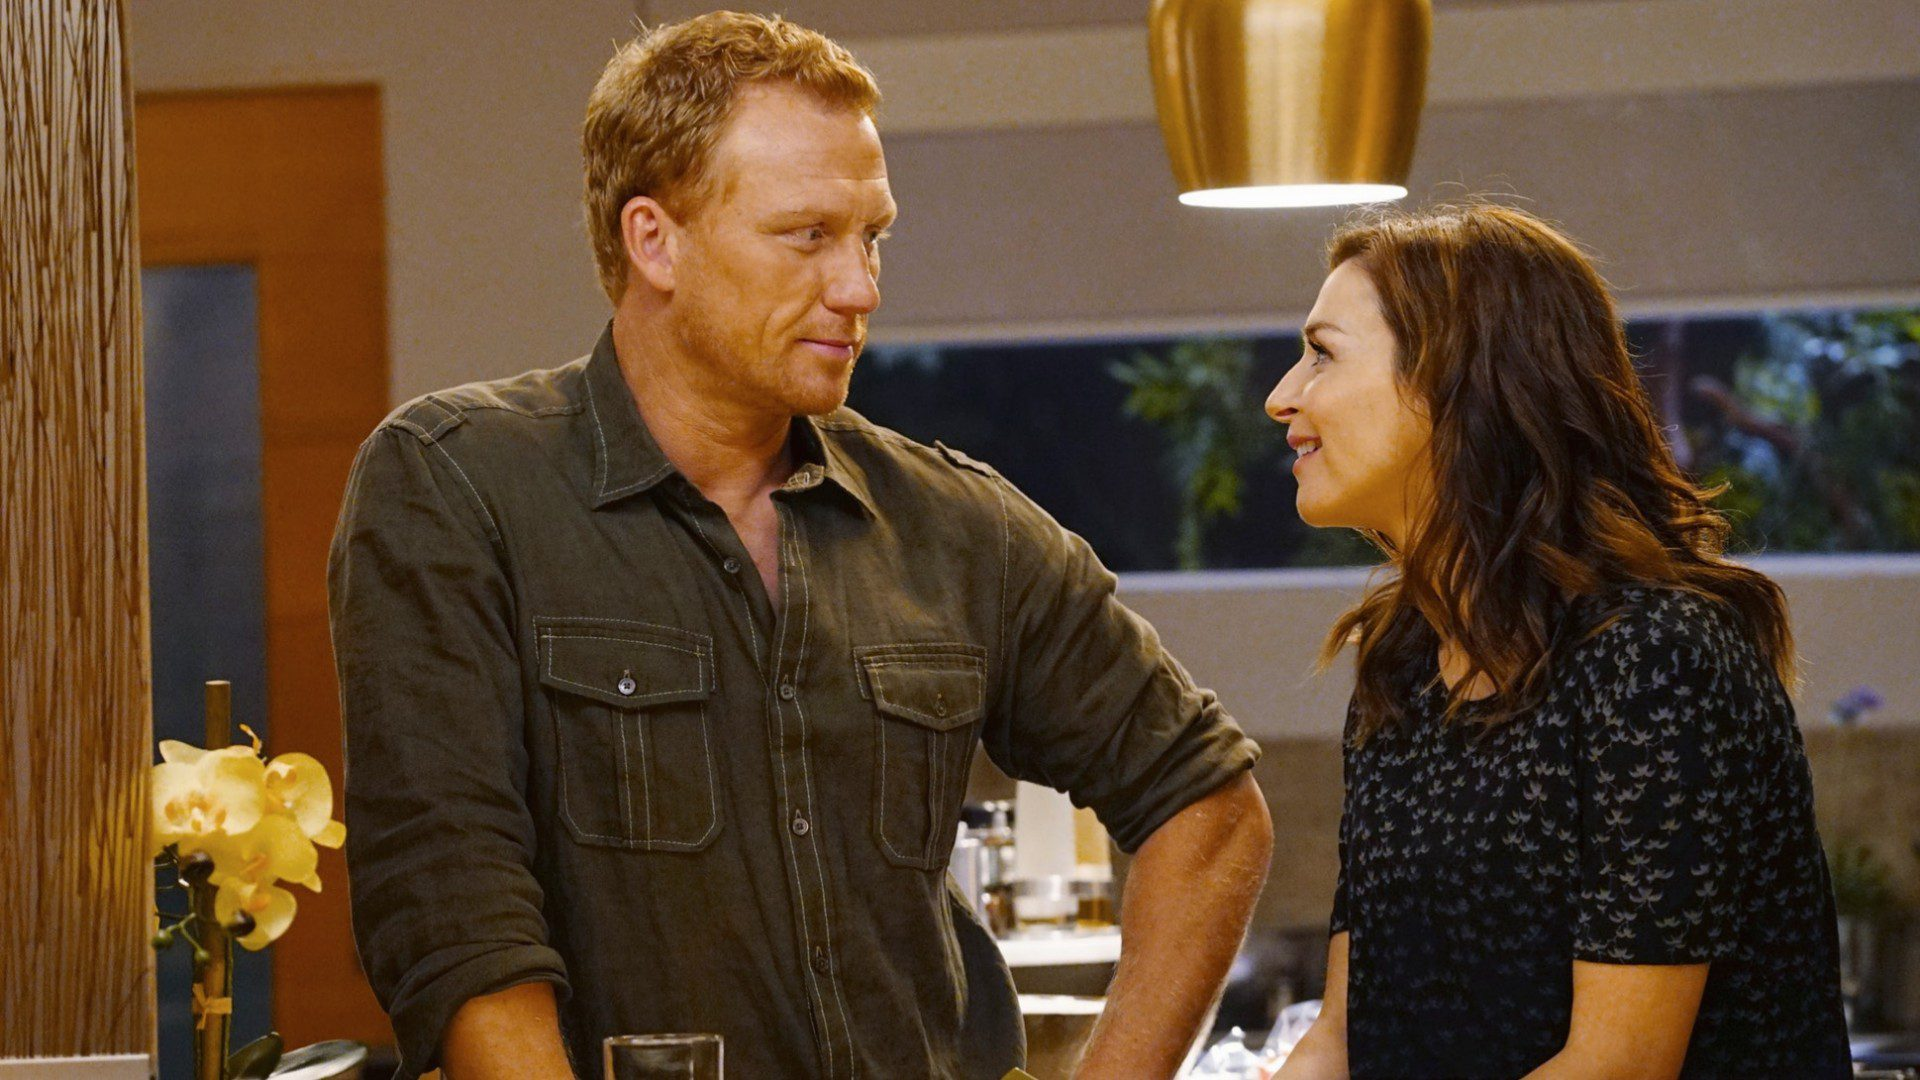 Who does Owen Hunt end up with?